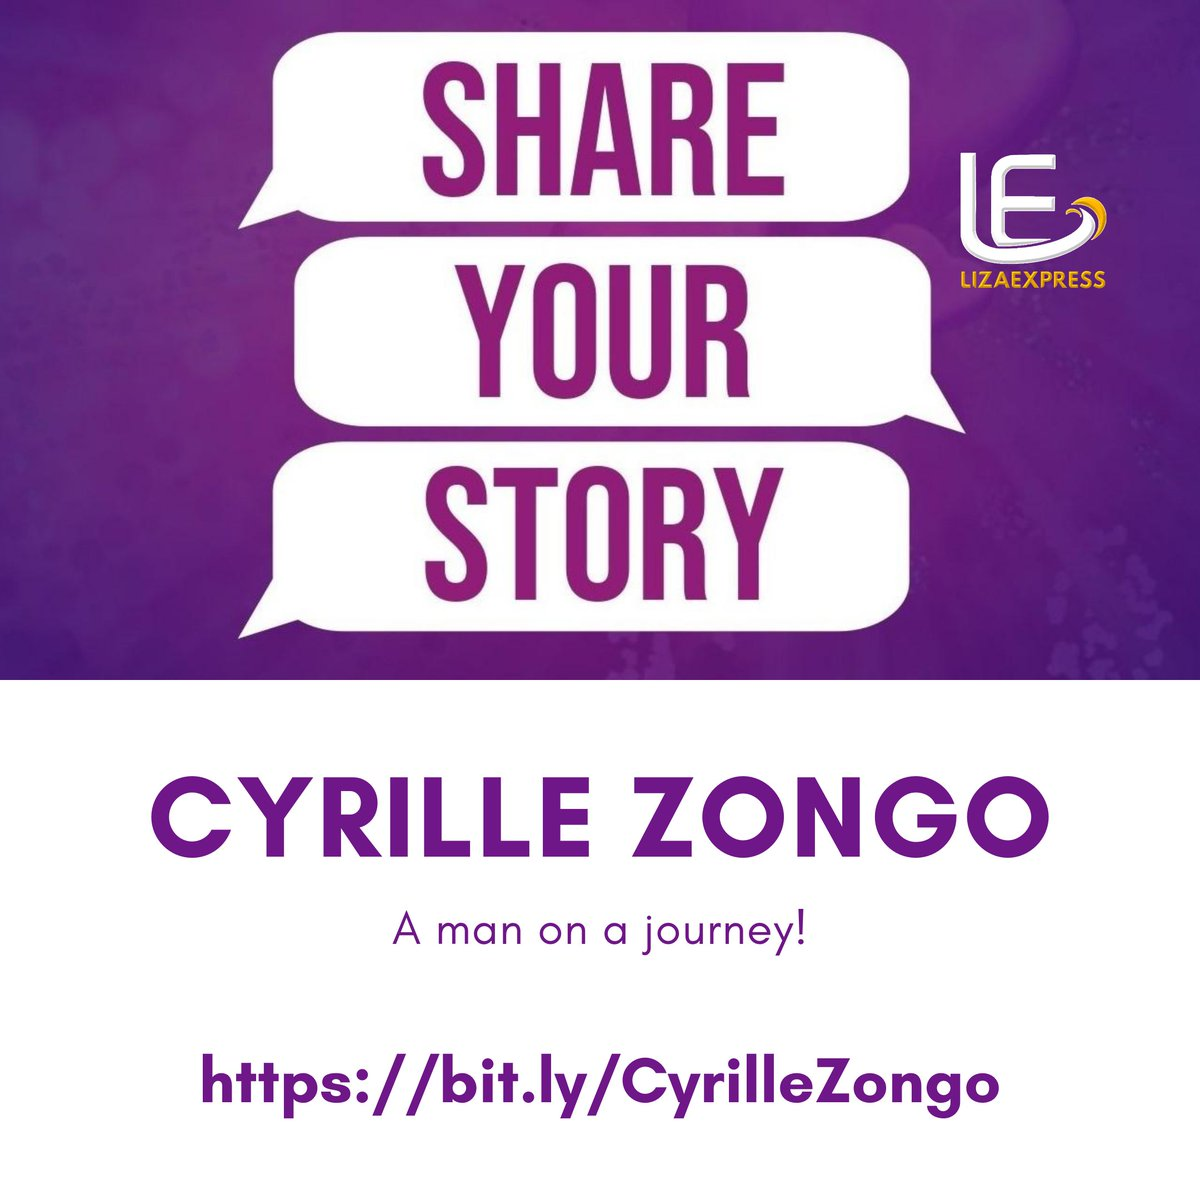 @CyrilleZongo wins our heart in his simple and honest narrative of failing and being on certain yet progressing.   full interview at http://bit.ly/CyrilleZongo   #journeys #shareyourstory #lizaexpresscpic.twitter.com/Tk2rh6bMRd